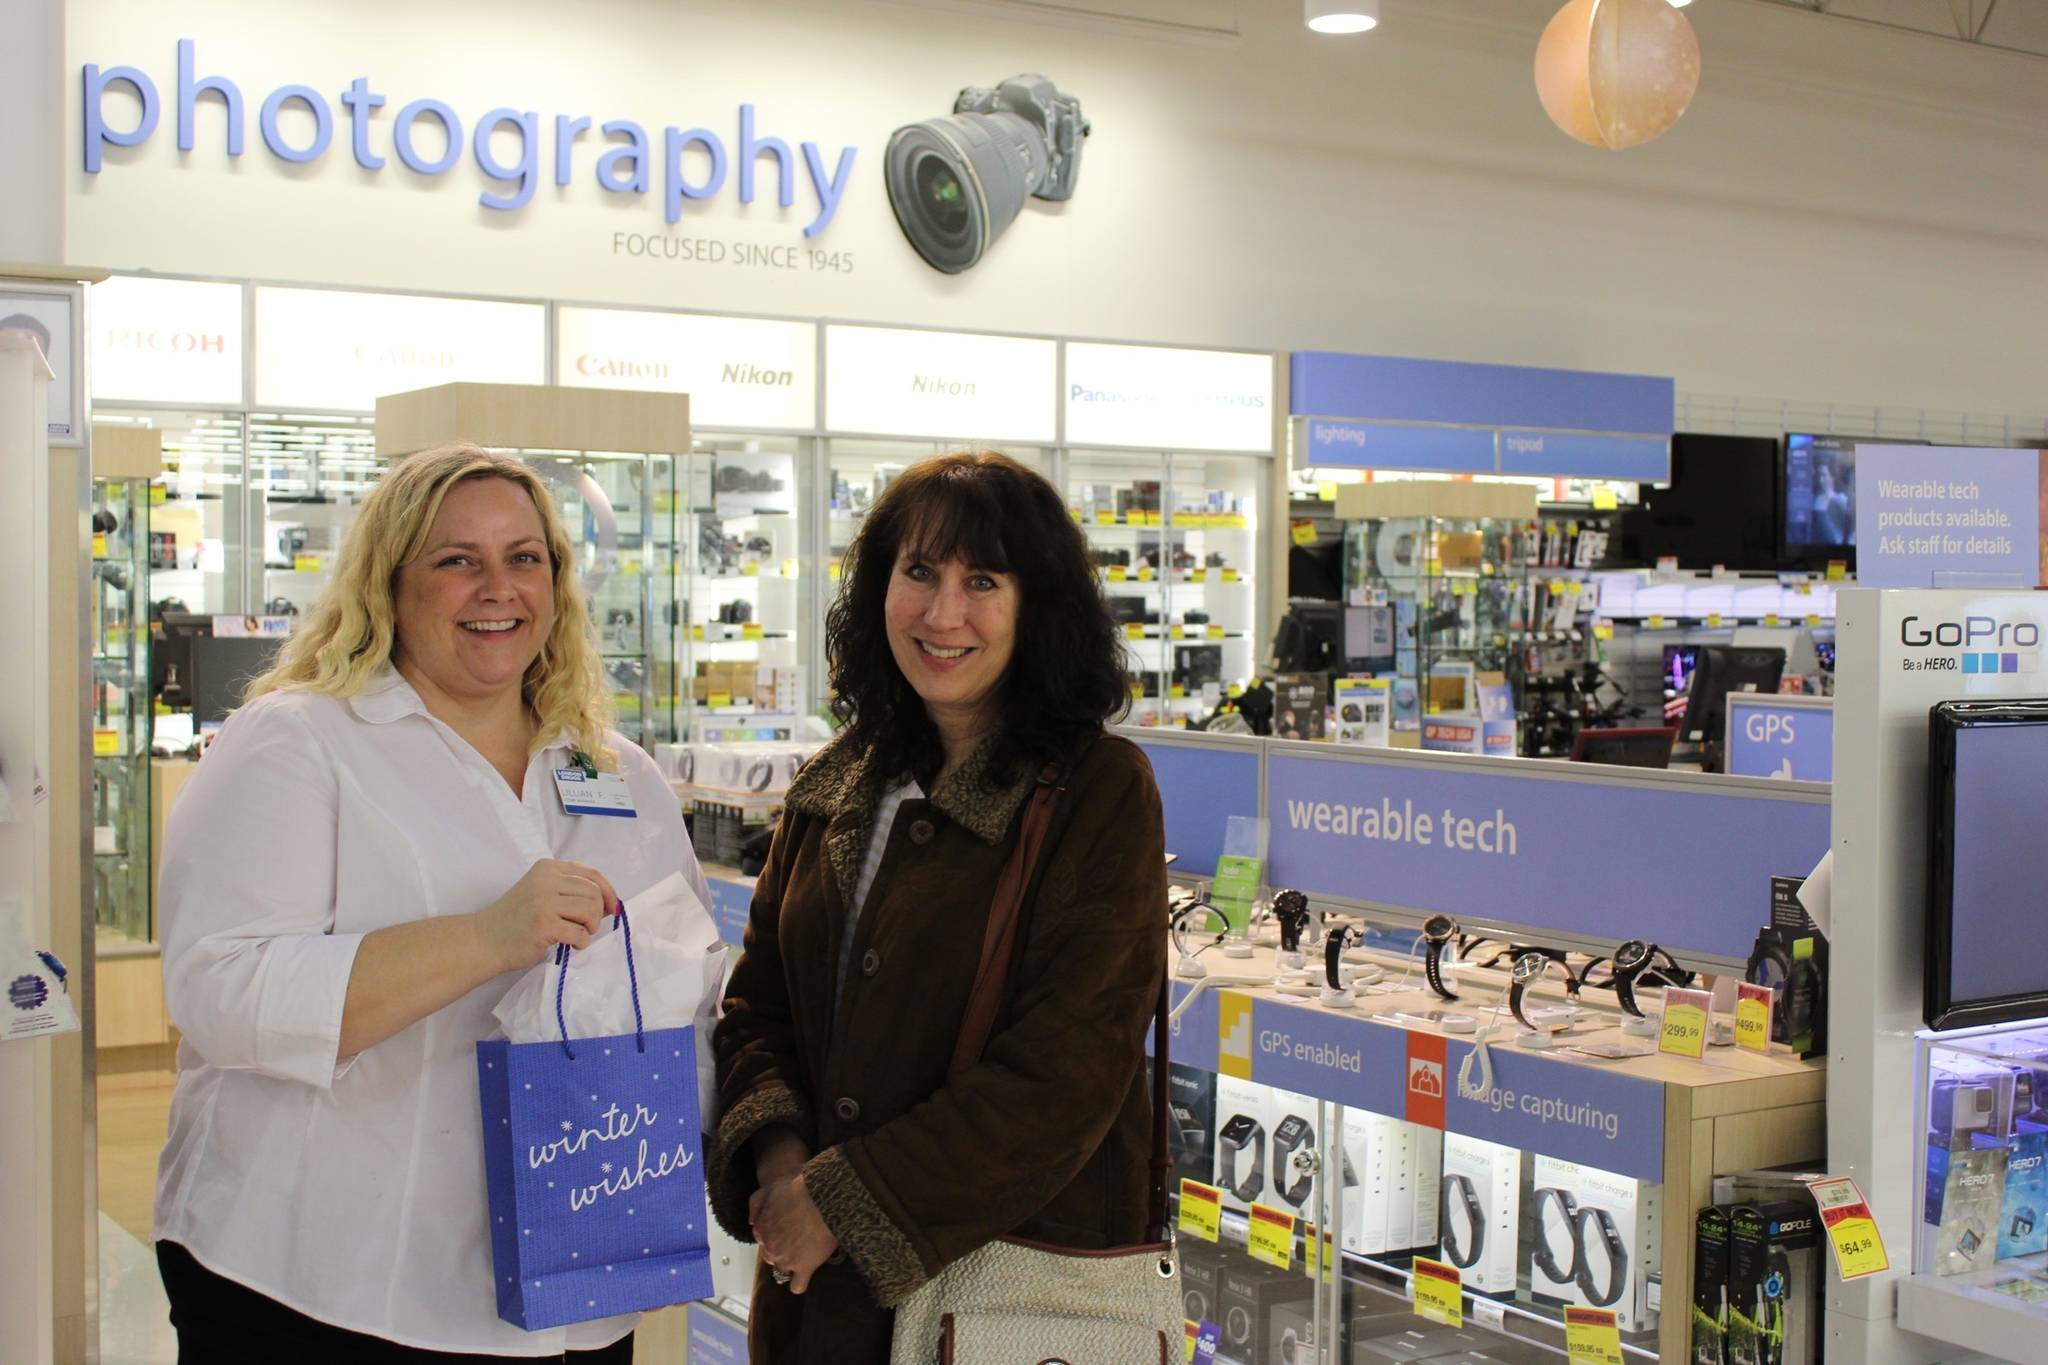 Angeline Haslett (right) poses with store manager Lillian Fast at a London Drugs store in Chilliwack after she was named the Amateur Photographer of the Year. (Photo by Kieran O'Connor/Black Press Media)